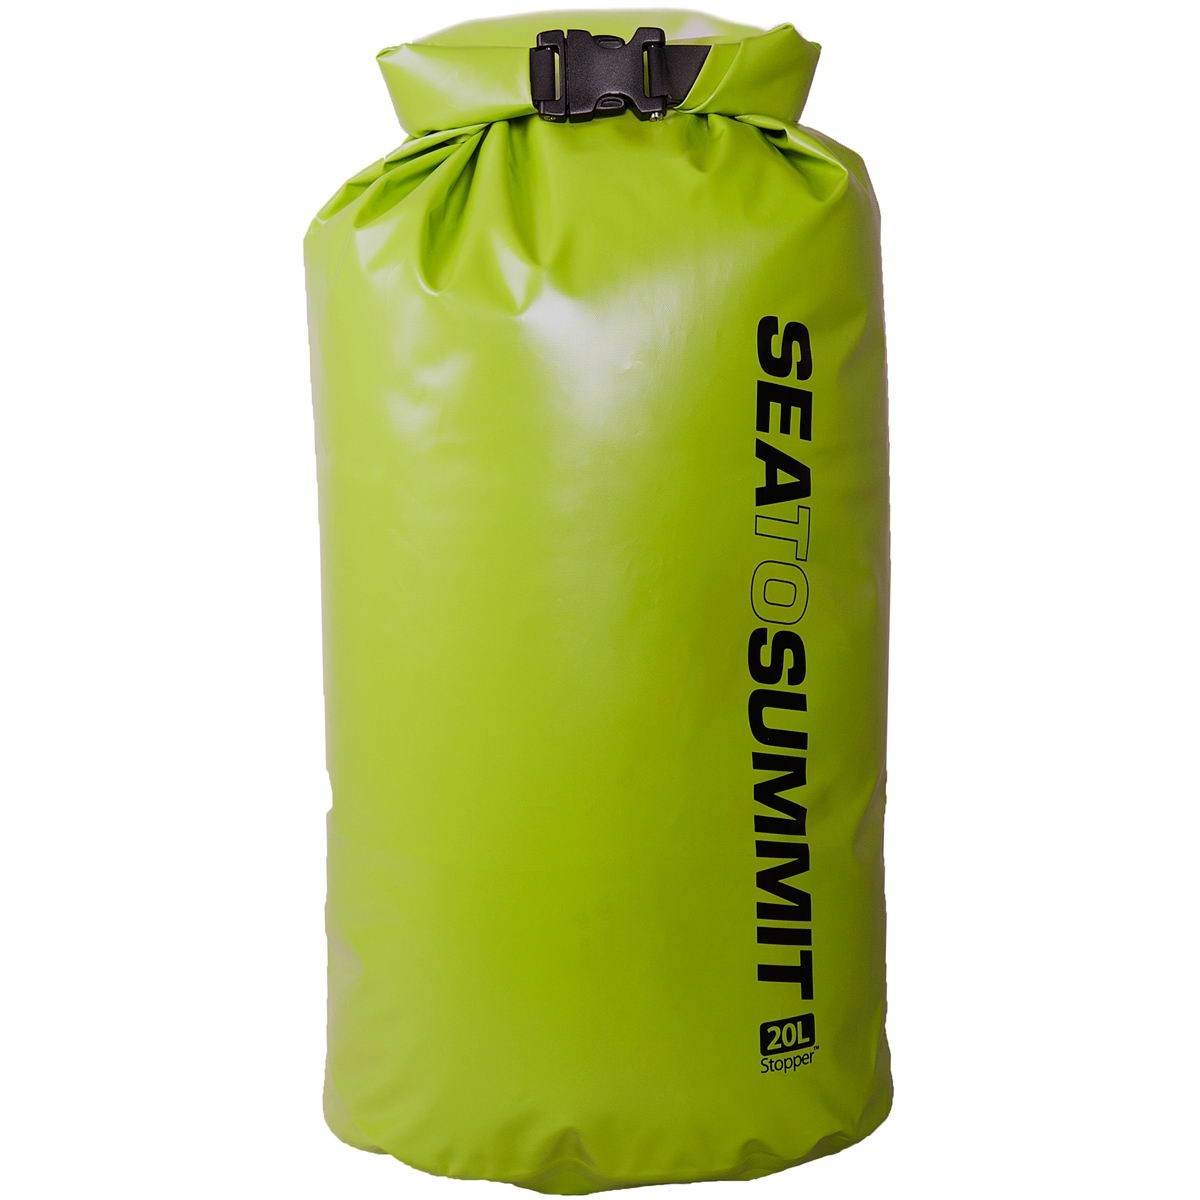 Sea To Summit Stopper Dry Bag 20L Green